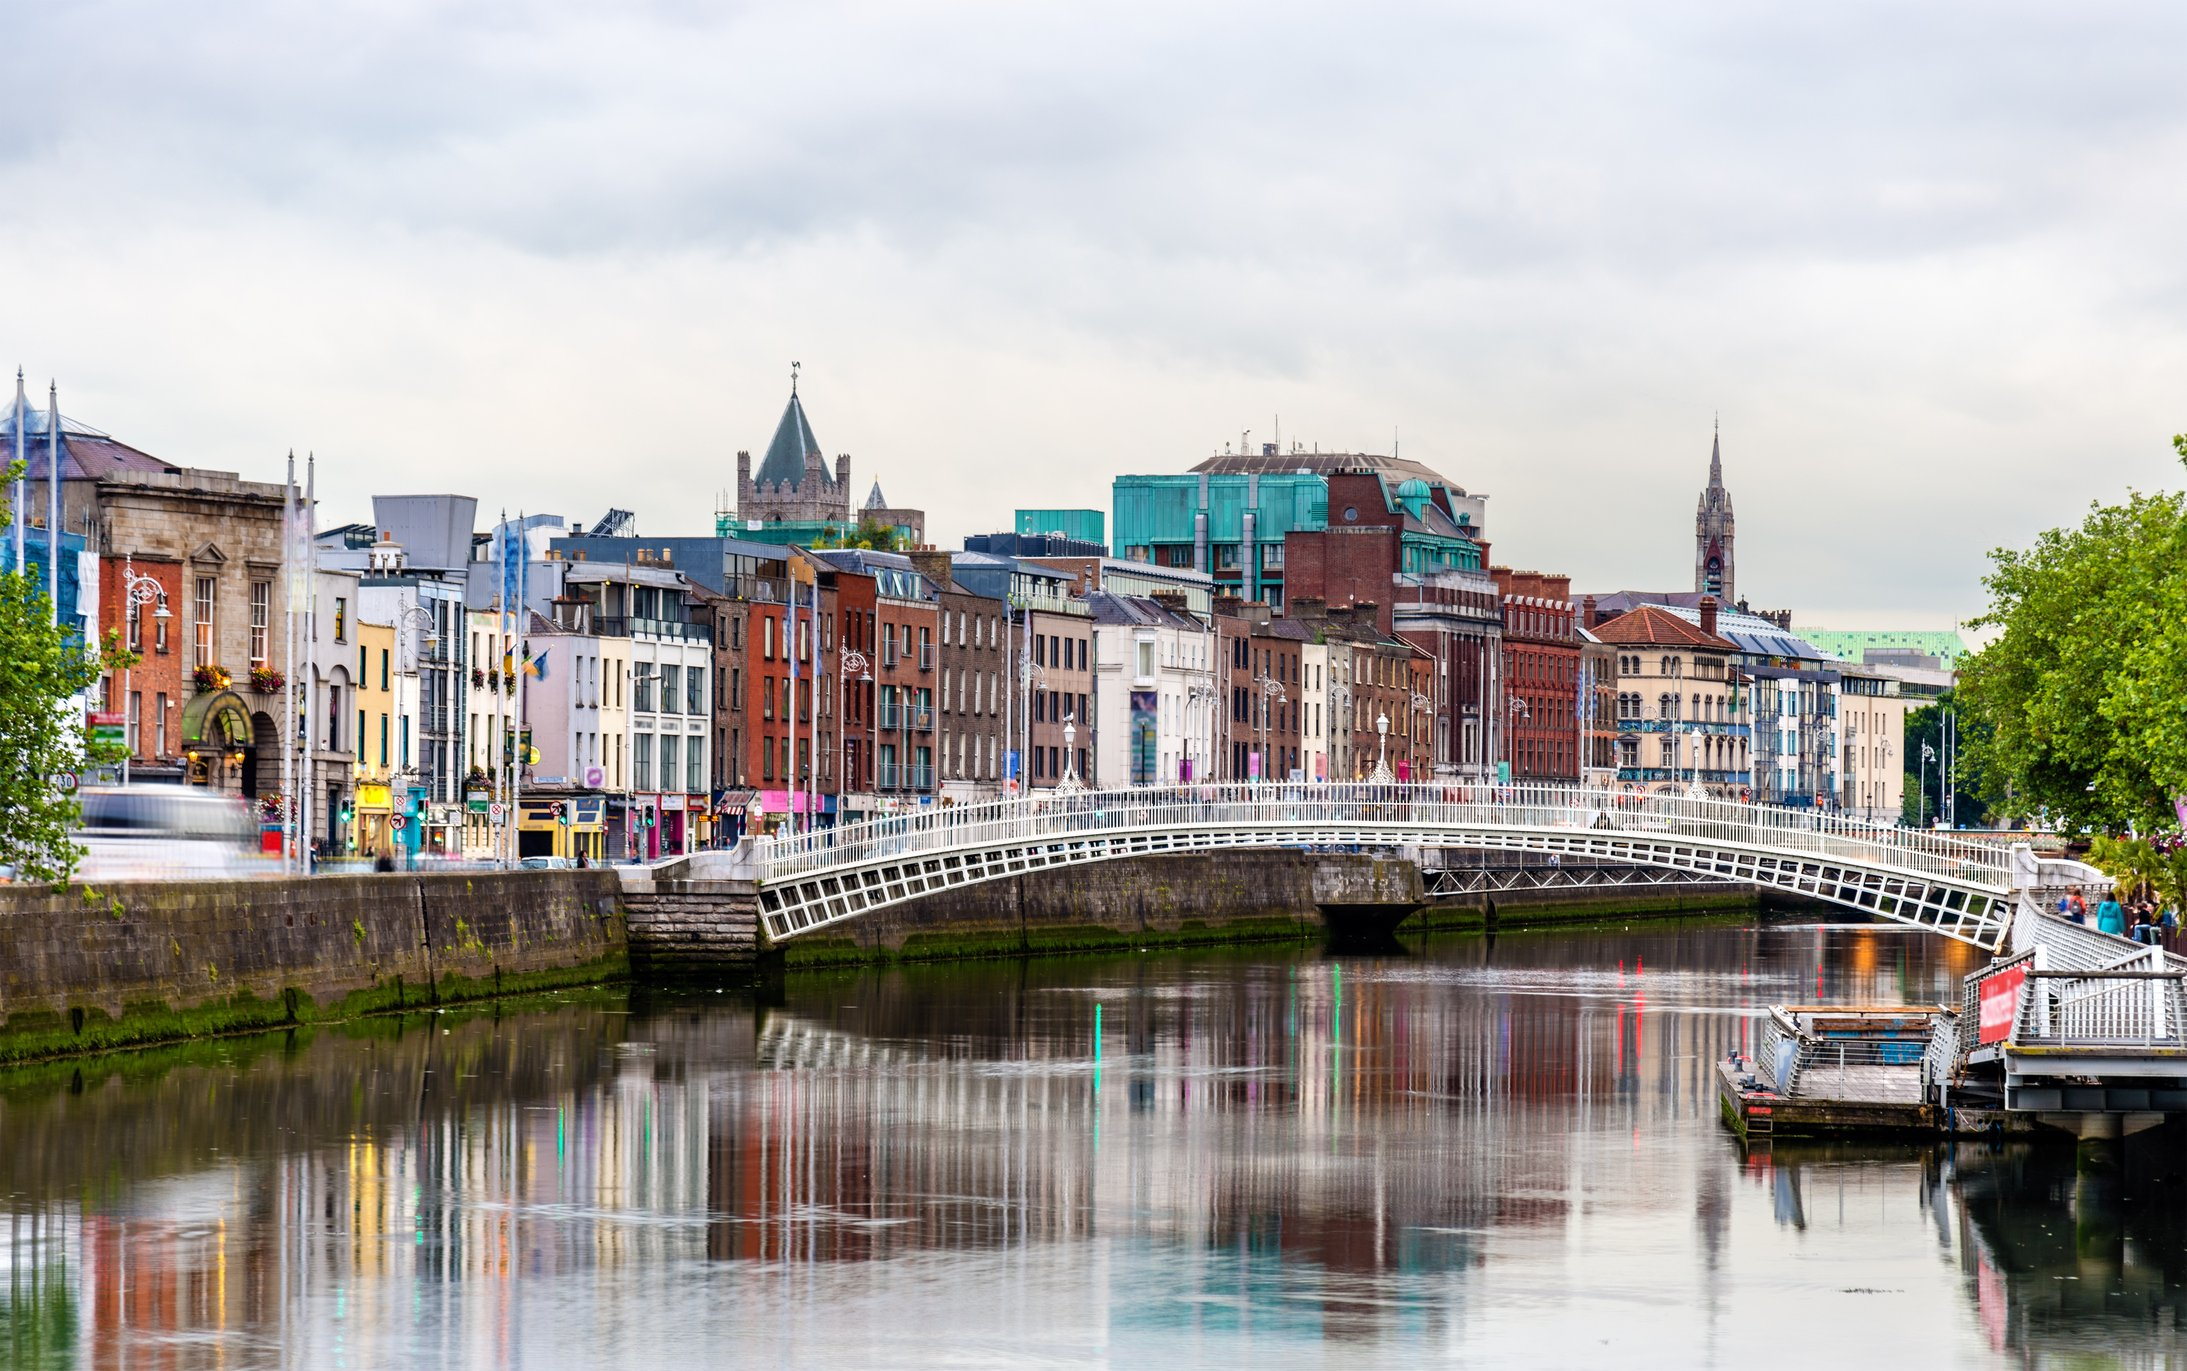 Facebook plans two more data centers in Dublin - DCD